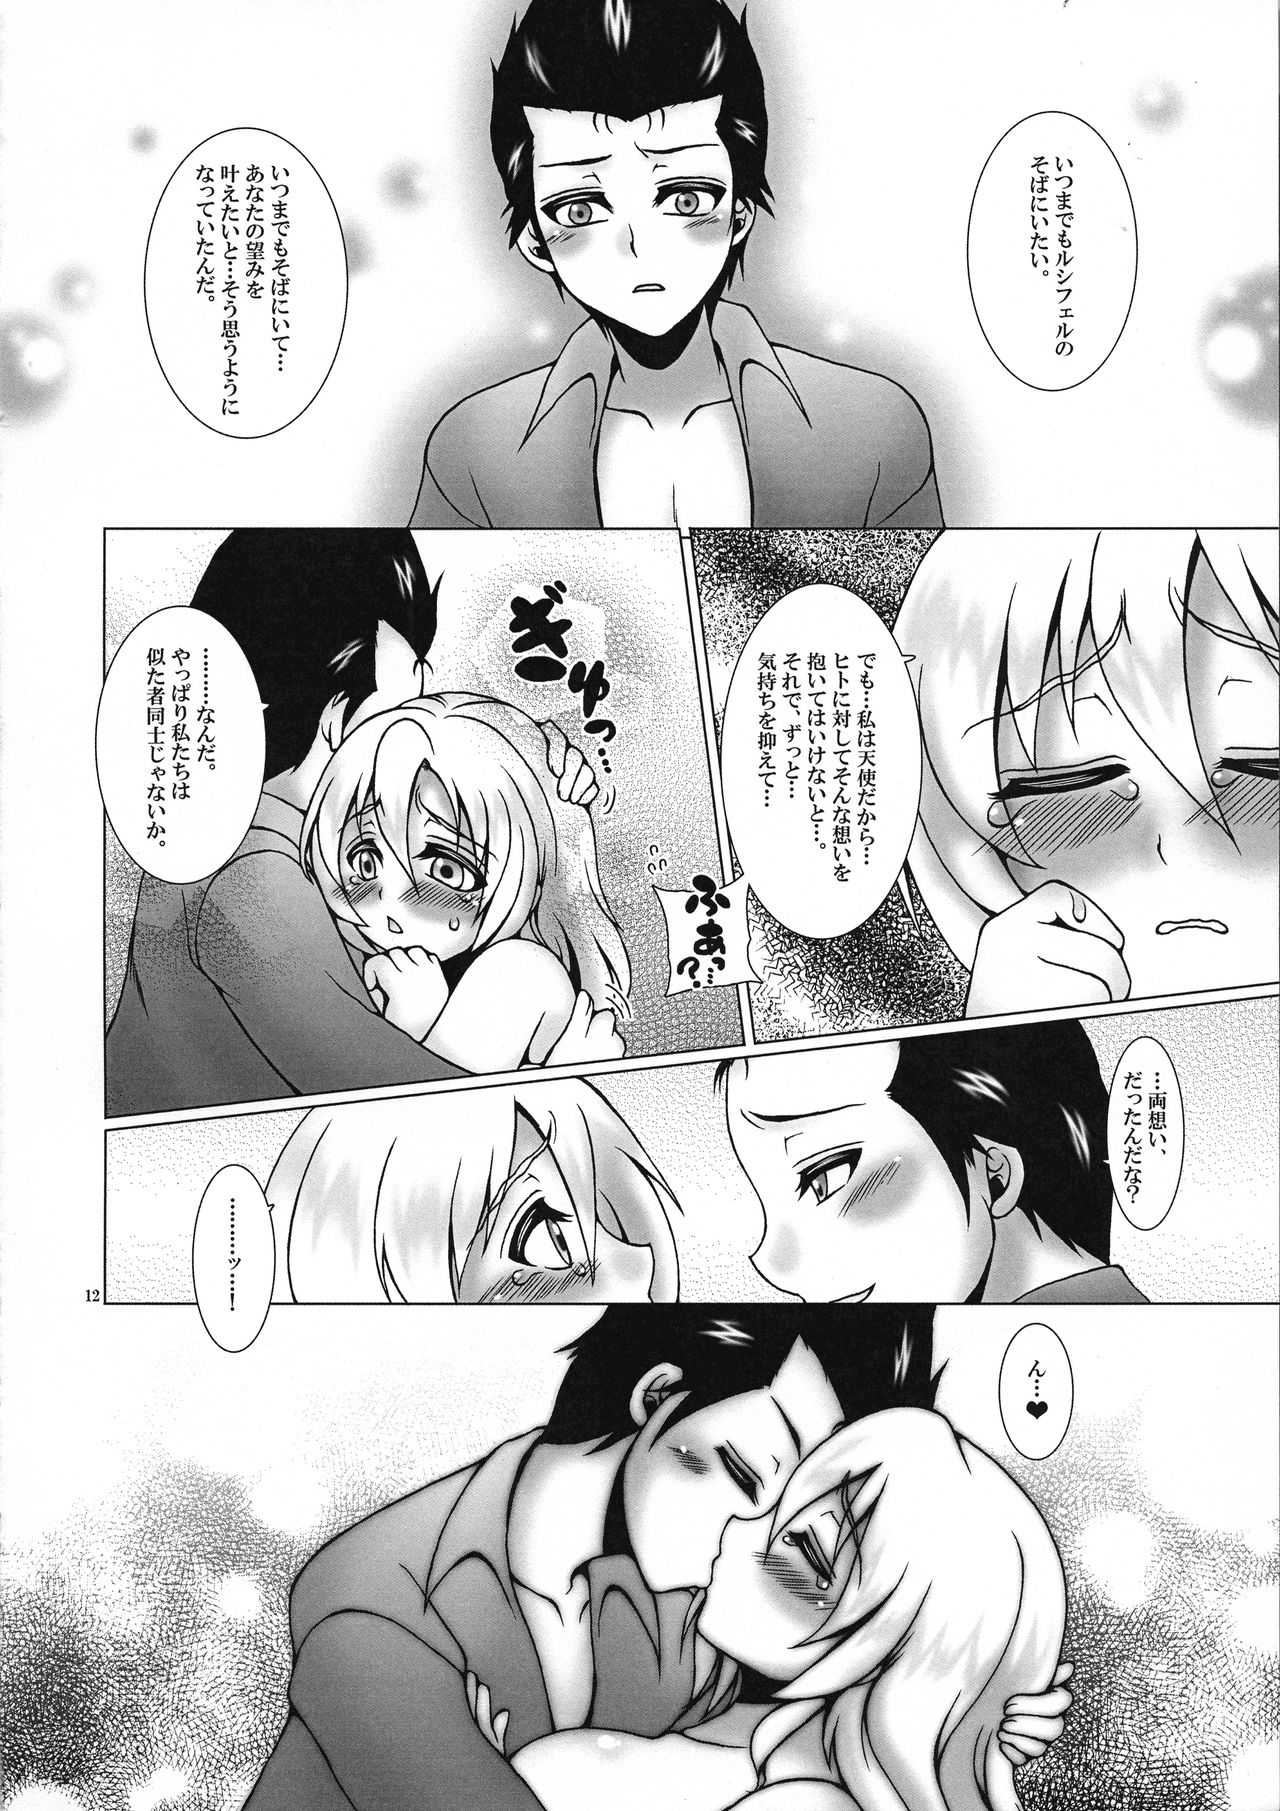 (C93) [Daifuku (Shouki)] Kono Kyoukai ni wa Tenshi ga Iru. 4 (El Shaddai: Ascension of the Metatron) page 12